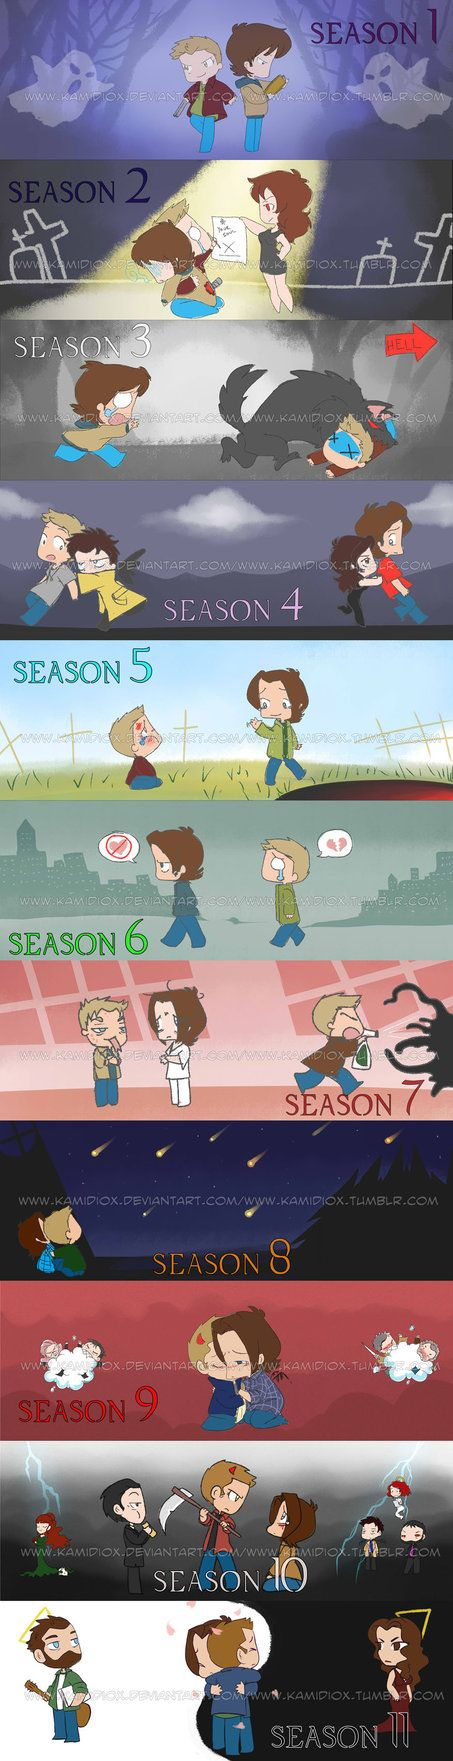 Supernatural 11 Seasons by KamiDiox.deviantart.com on @DeviantArt